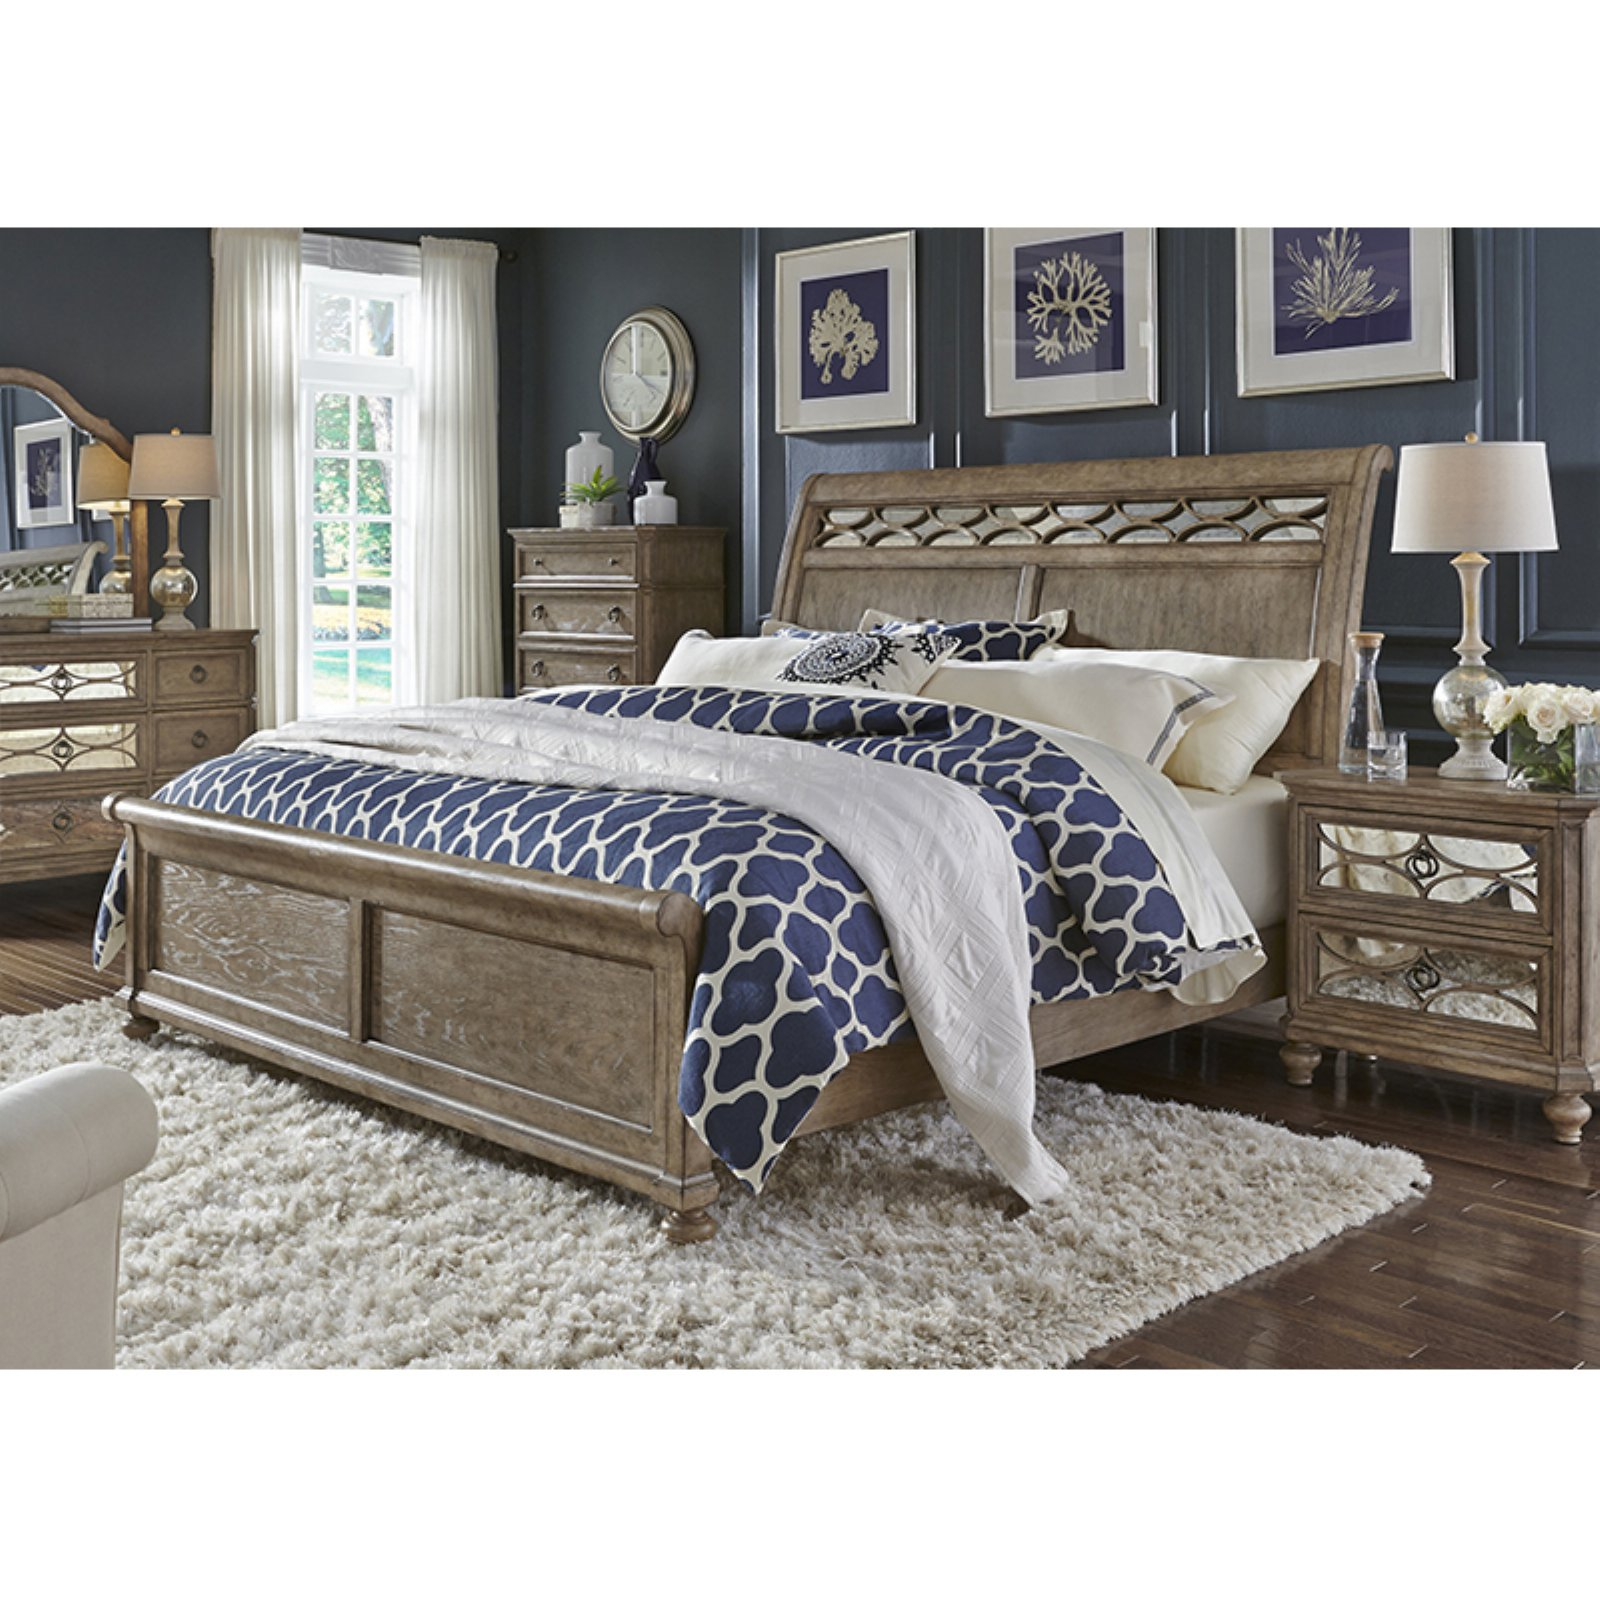 Liberty Furniture Industries Simply Elegant Sleigh Bed